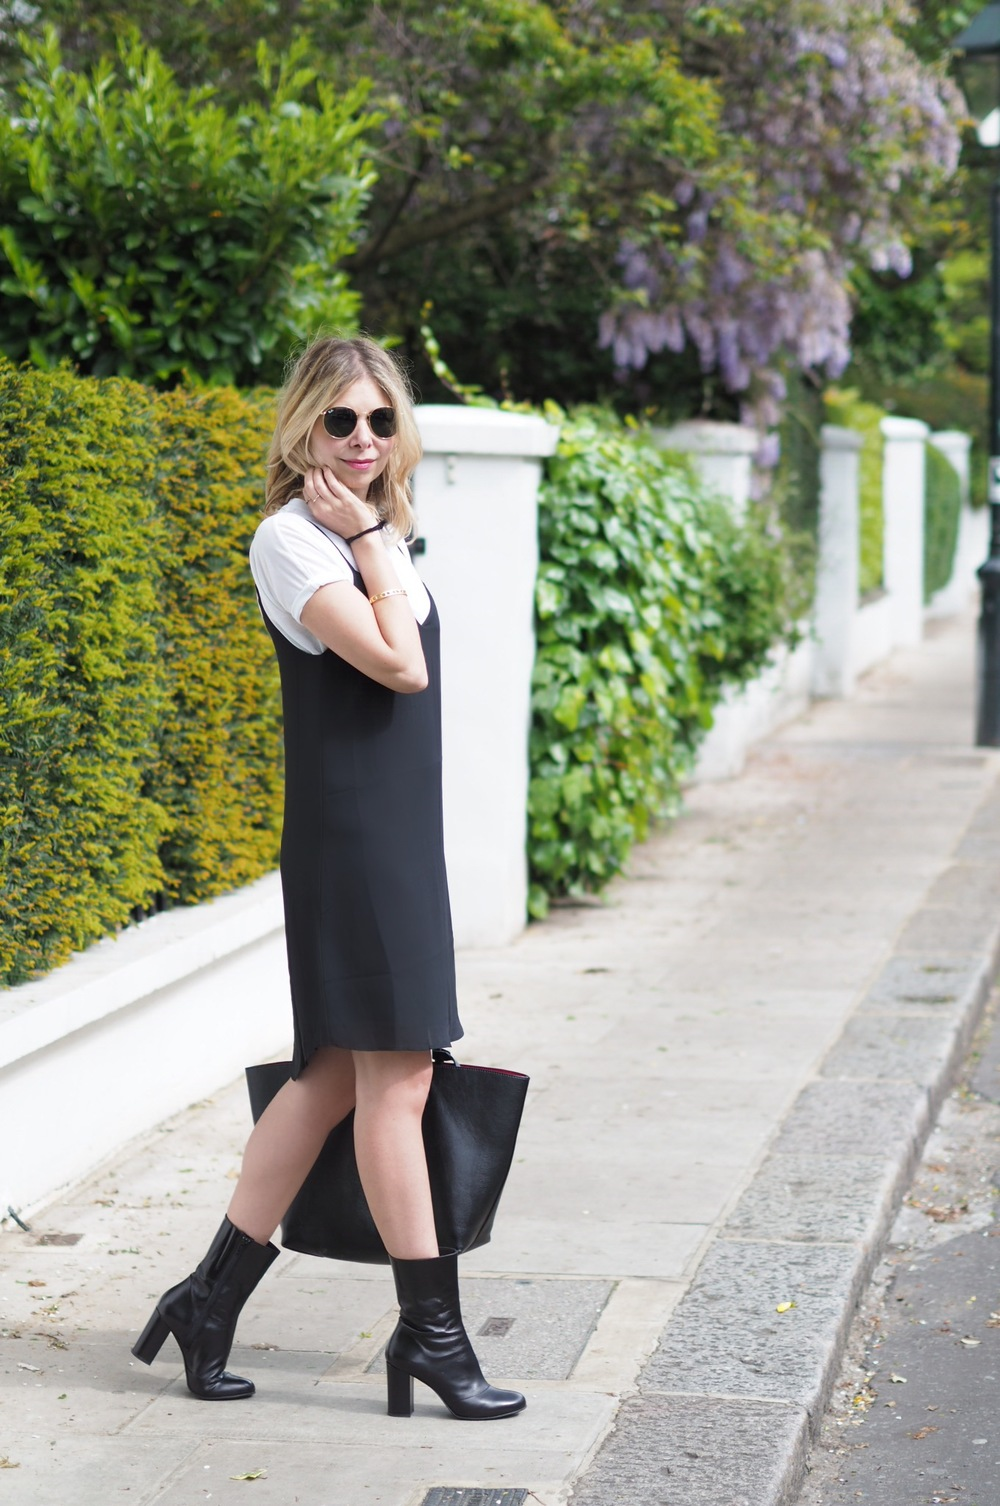 Arianna Trapani wears Camisole dress from Sincerely Jules, White t.shirt from COS, Ankle boots from Russell & Bromley, Sunglasses from Rayban, Bag from Zara and necklace from Missoma.